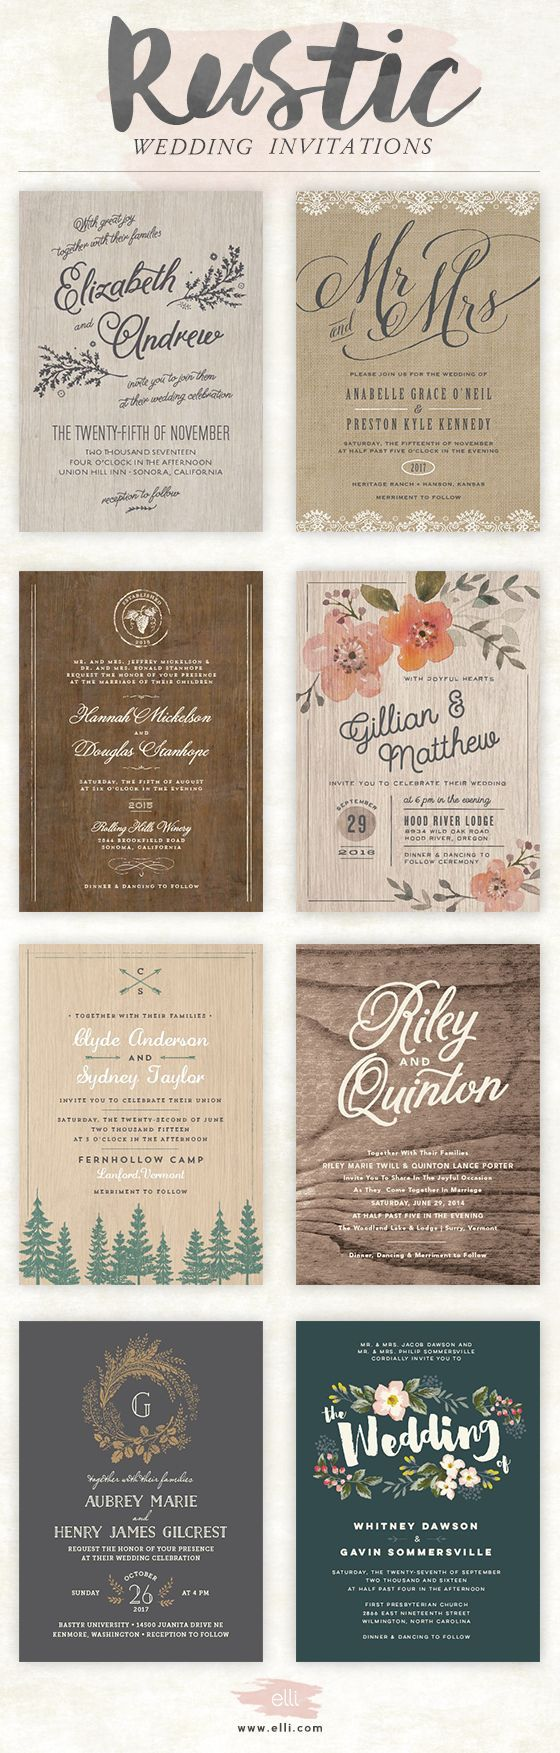 sunflower wedding invitations printable%0A Beautiful rustic wedding invitations  Editable instant download templates  you can print as many as you need   wedding  invitations  vinewedding    Pinterest